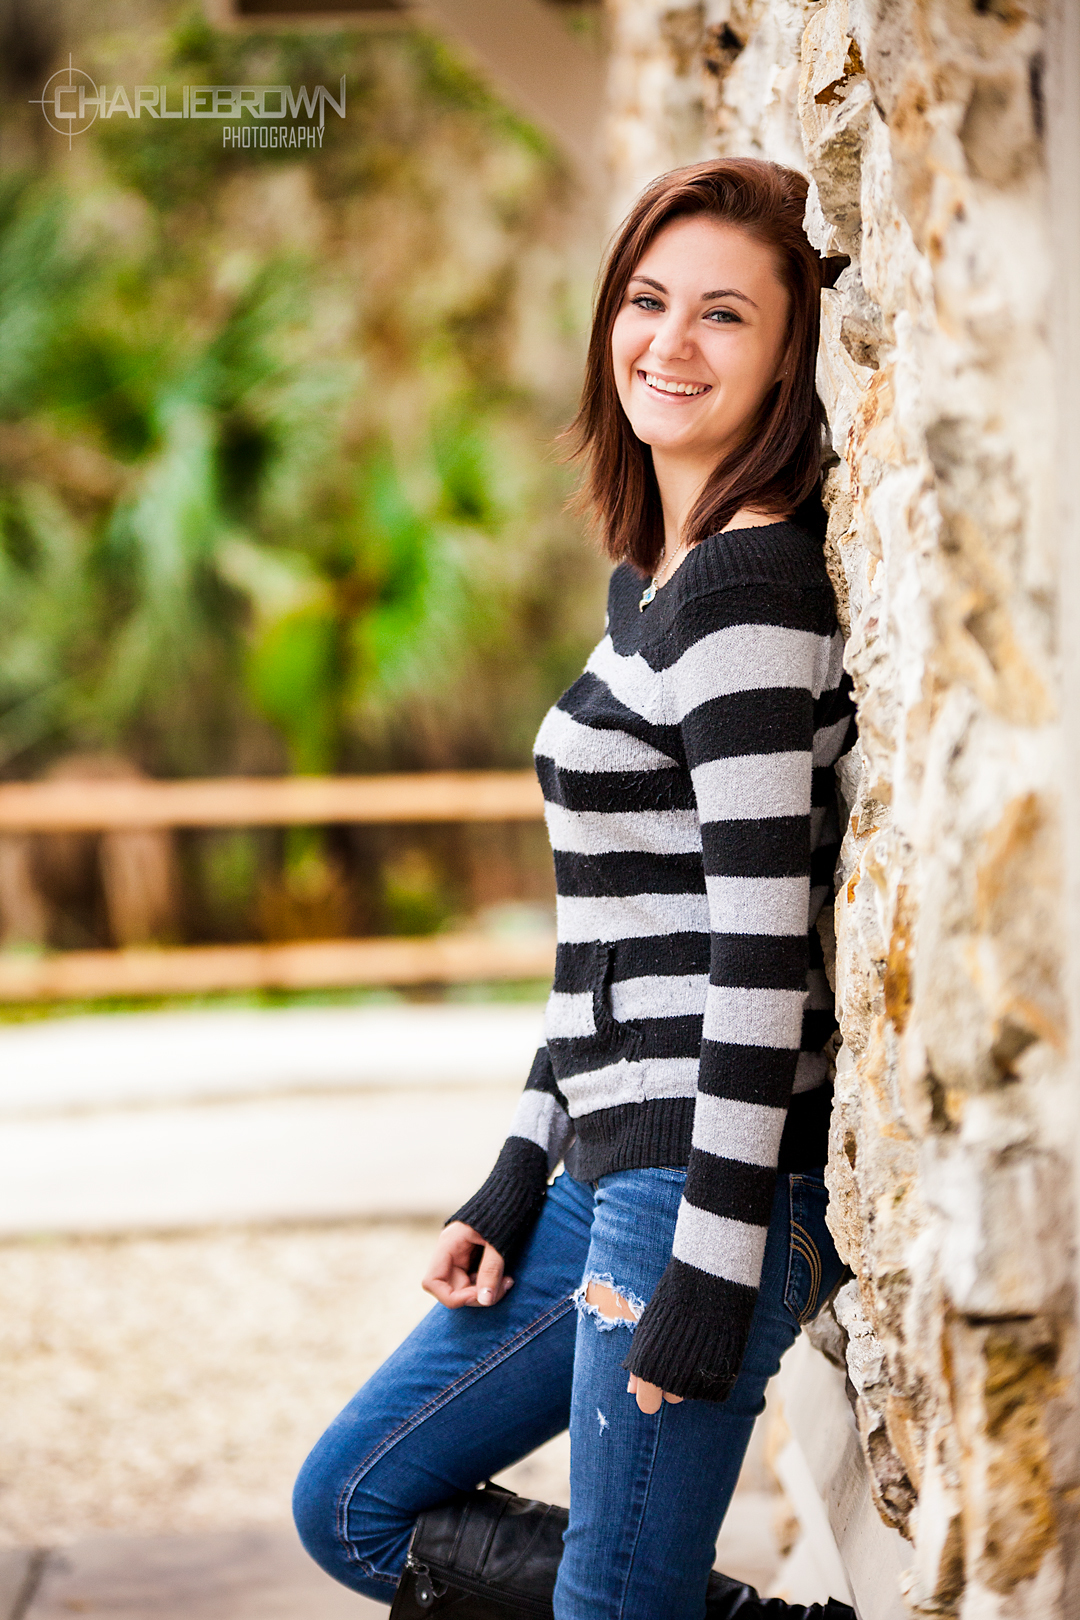 Charlie Brown Photography Senior Session Citrus County,FL